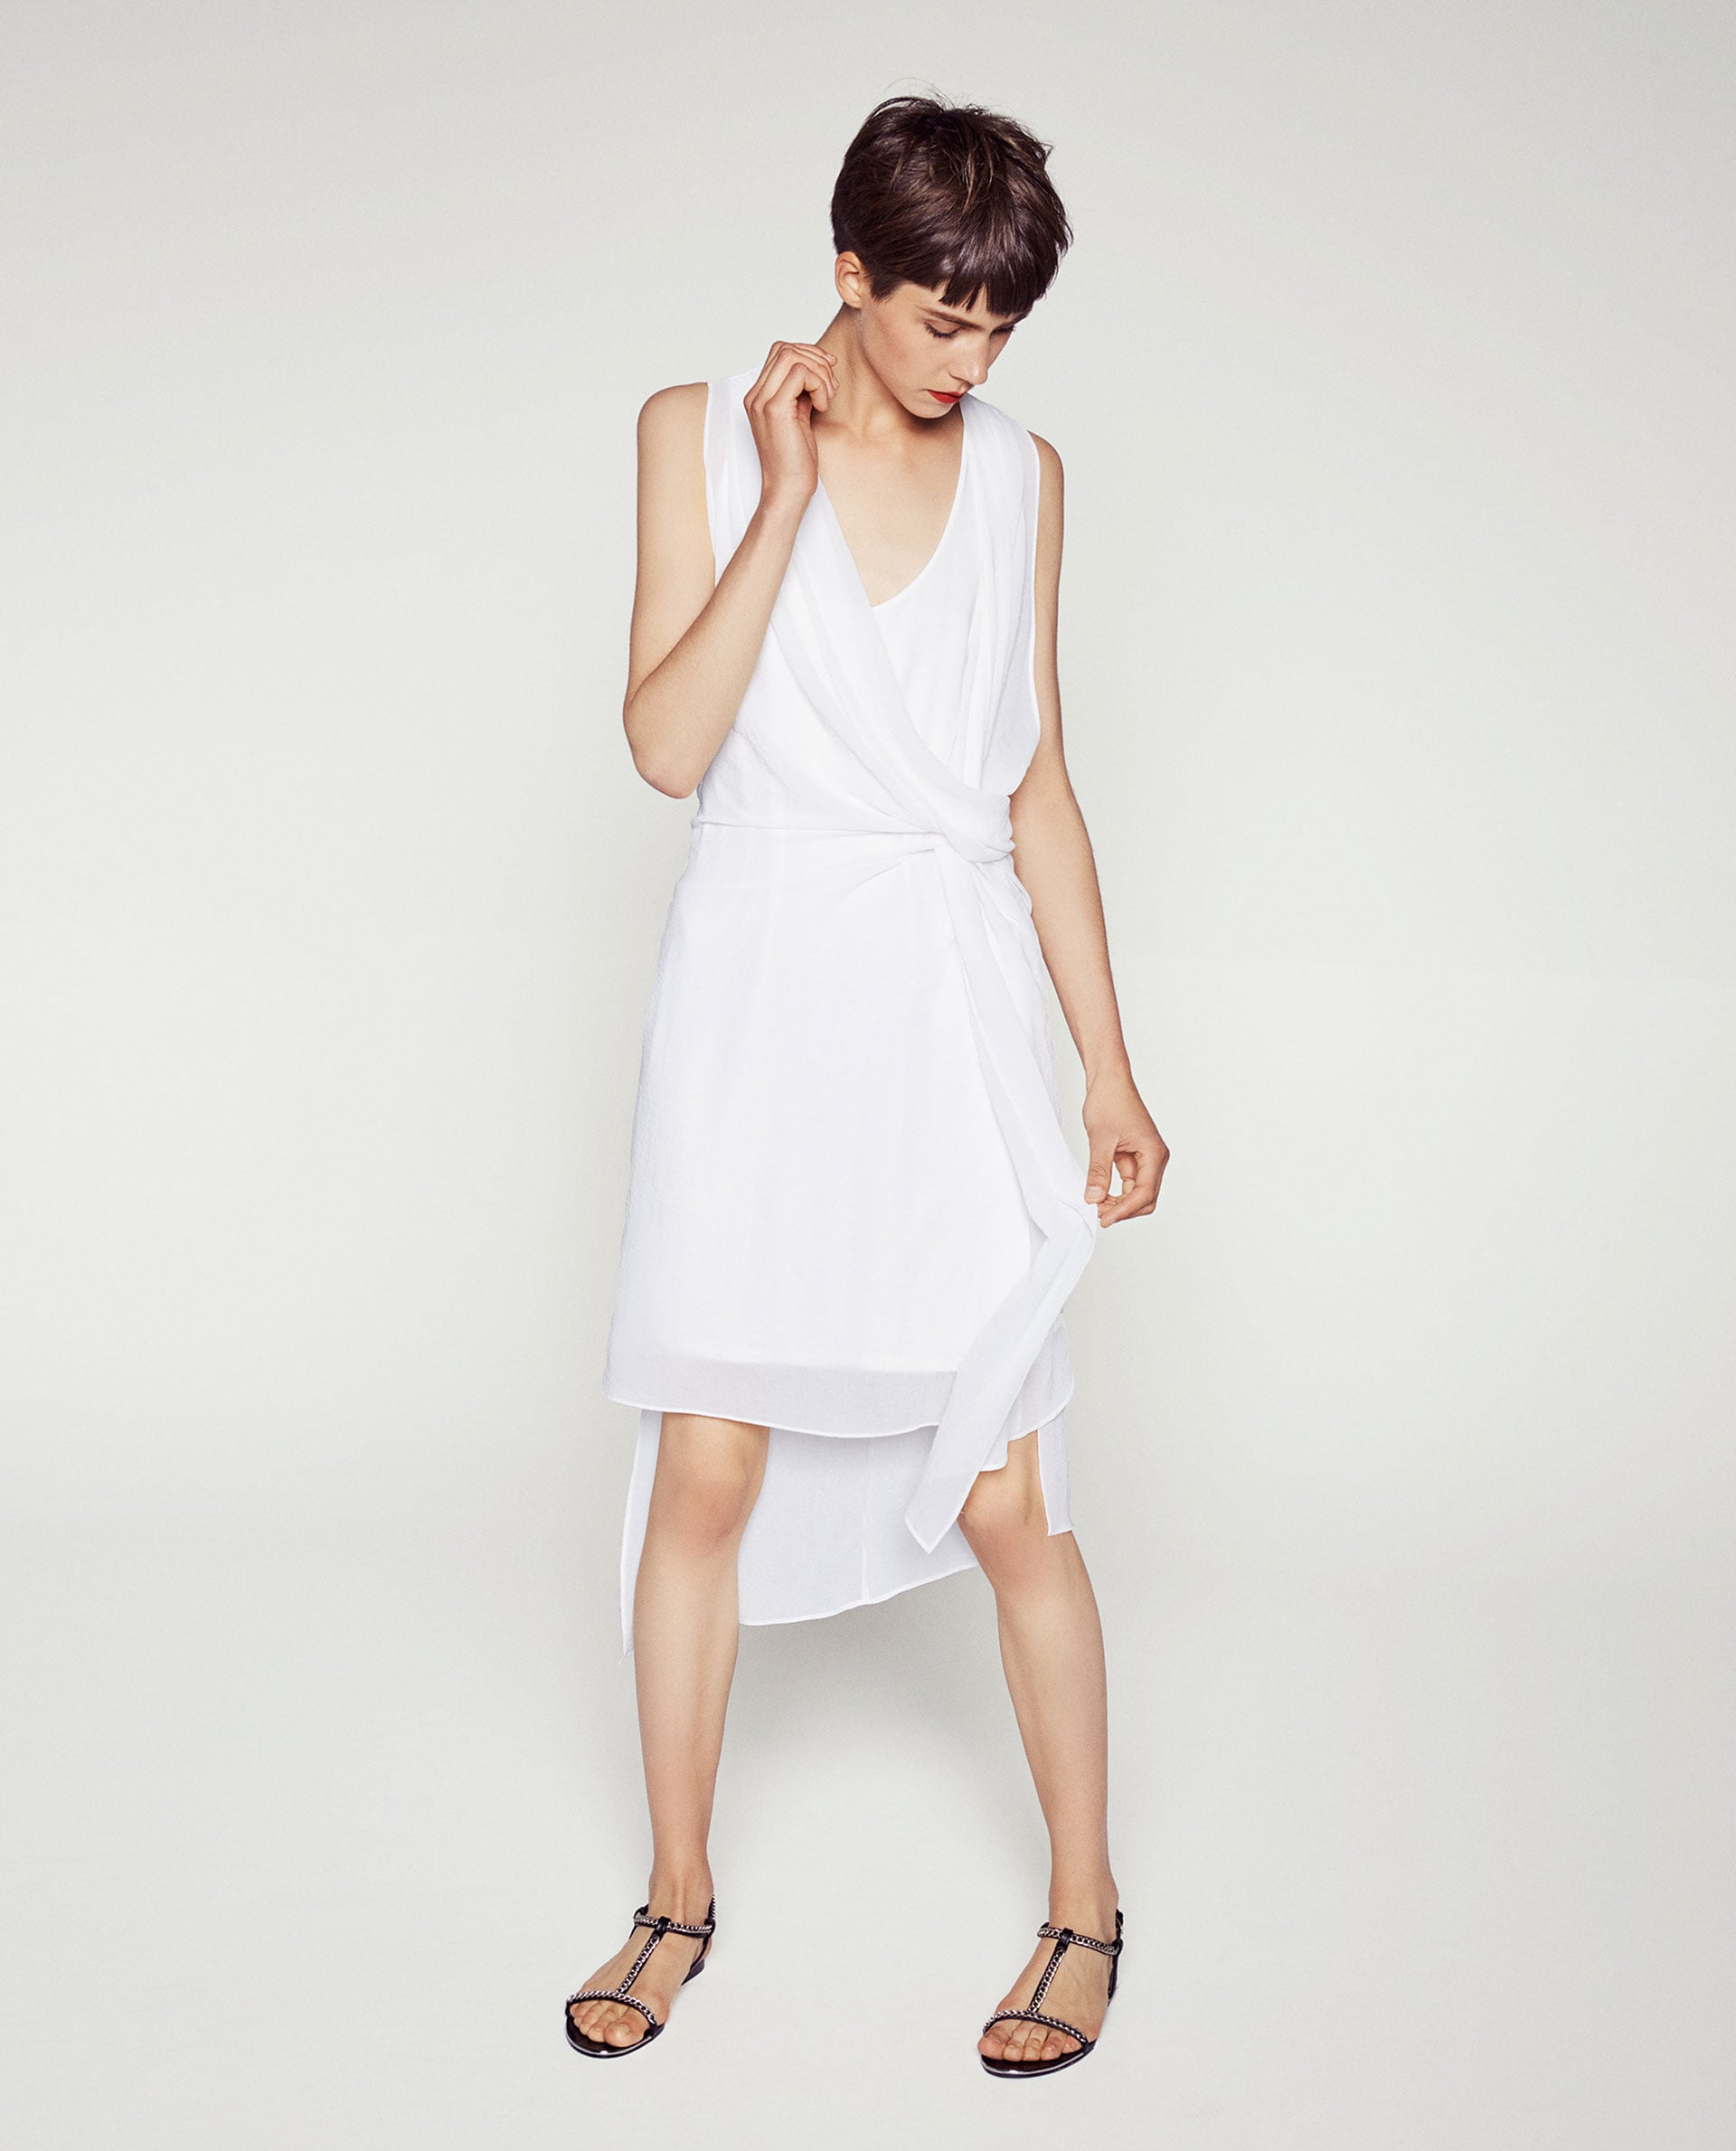 Zara Asymmetric Gathered Dress ($50)